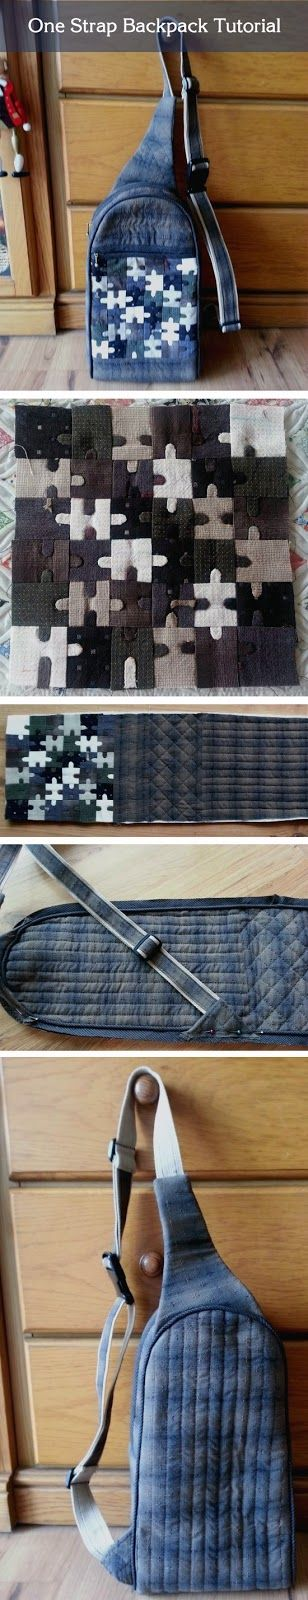 Monostrap Backpack, One strap backpack. DIY step-by-step tutorial.  http://www.handmadiya.com/2015/08/sling-shoulder-bag-patchwork.html